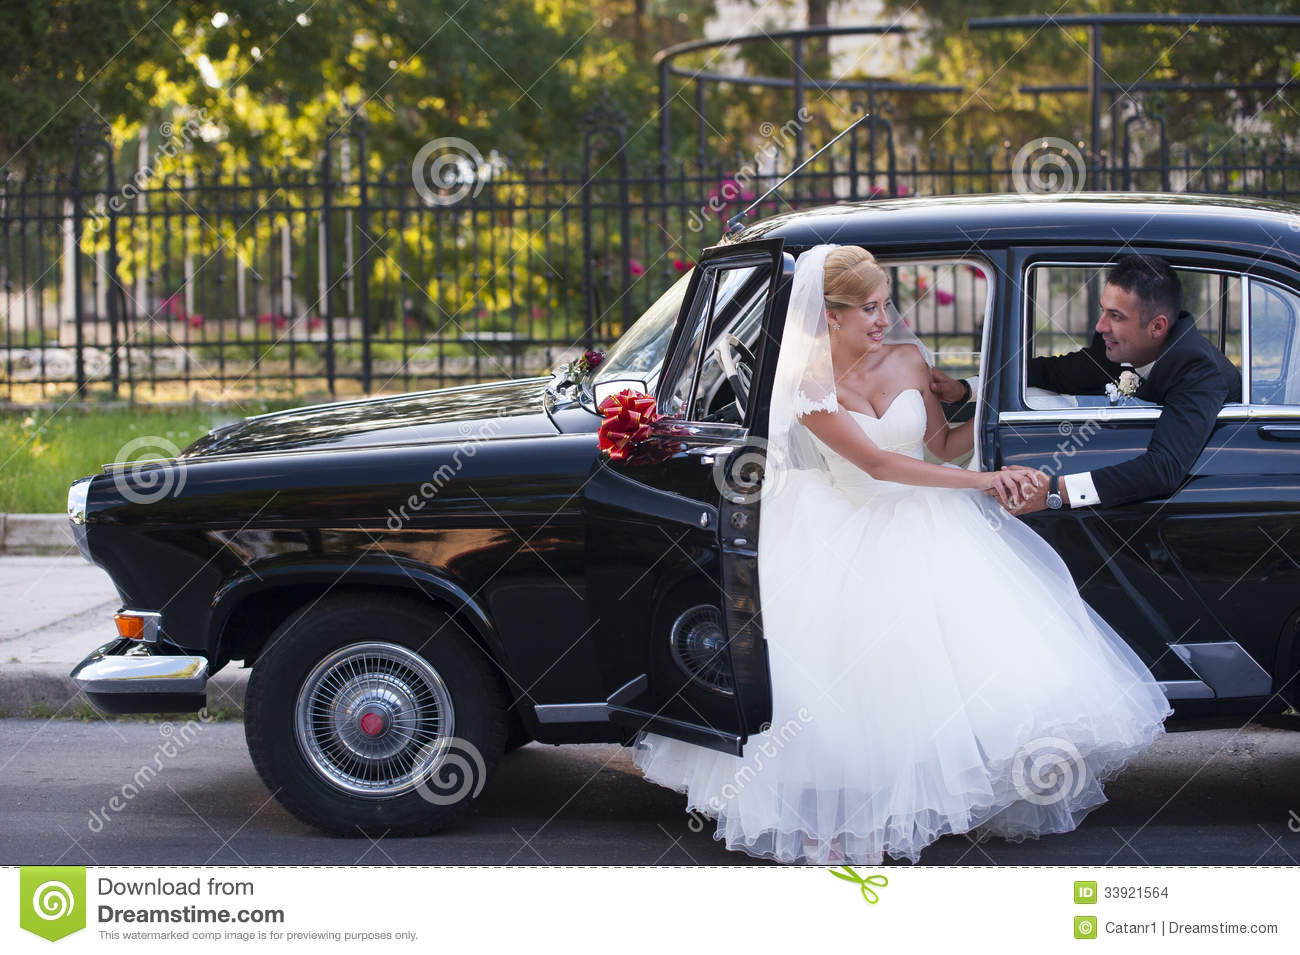 Wedding Couple Meet In A Vintage Car Stock Photo - Image: 33921564